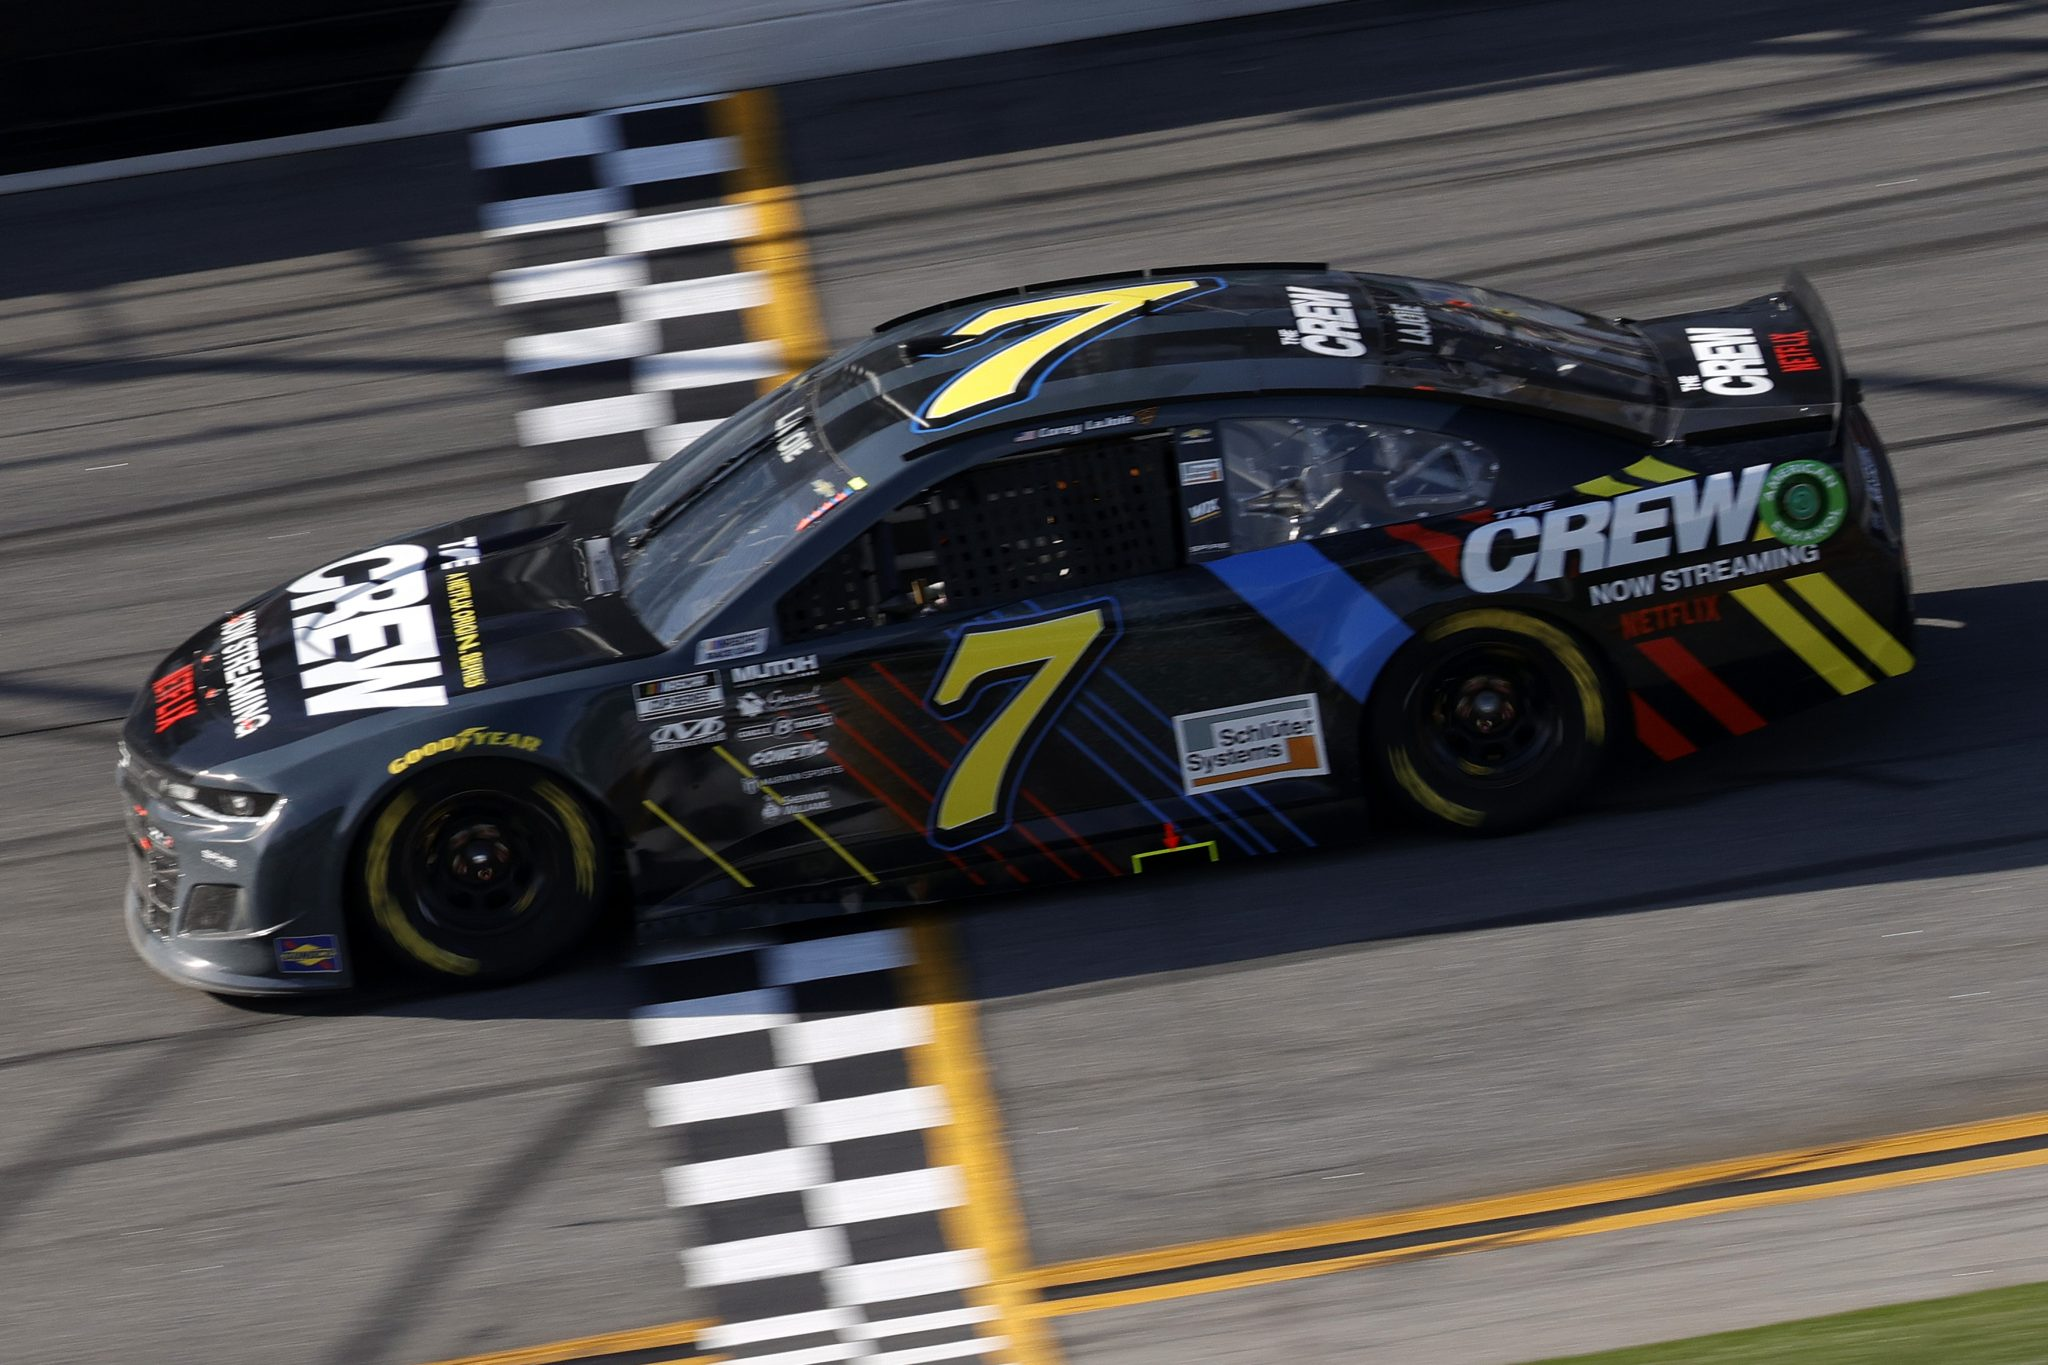 DAYTONA BEACH, FLORIDA - FEBRUARY 21: Corey LaJoie, driver of the #7 Netflix Chevrolet, drives during the NASCAR Cup Series O'Reilly Auto Parts 253 at Daytona International Speedway on February 21, 2021 in Daytona Beach, Florida. (Photo by Chris Graythen/Getty Images)   Getty Images